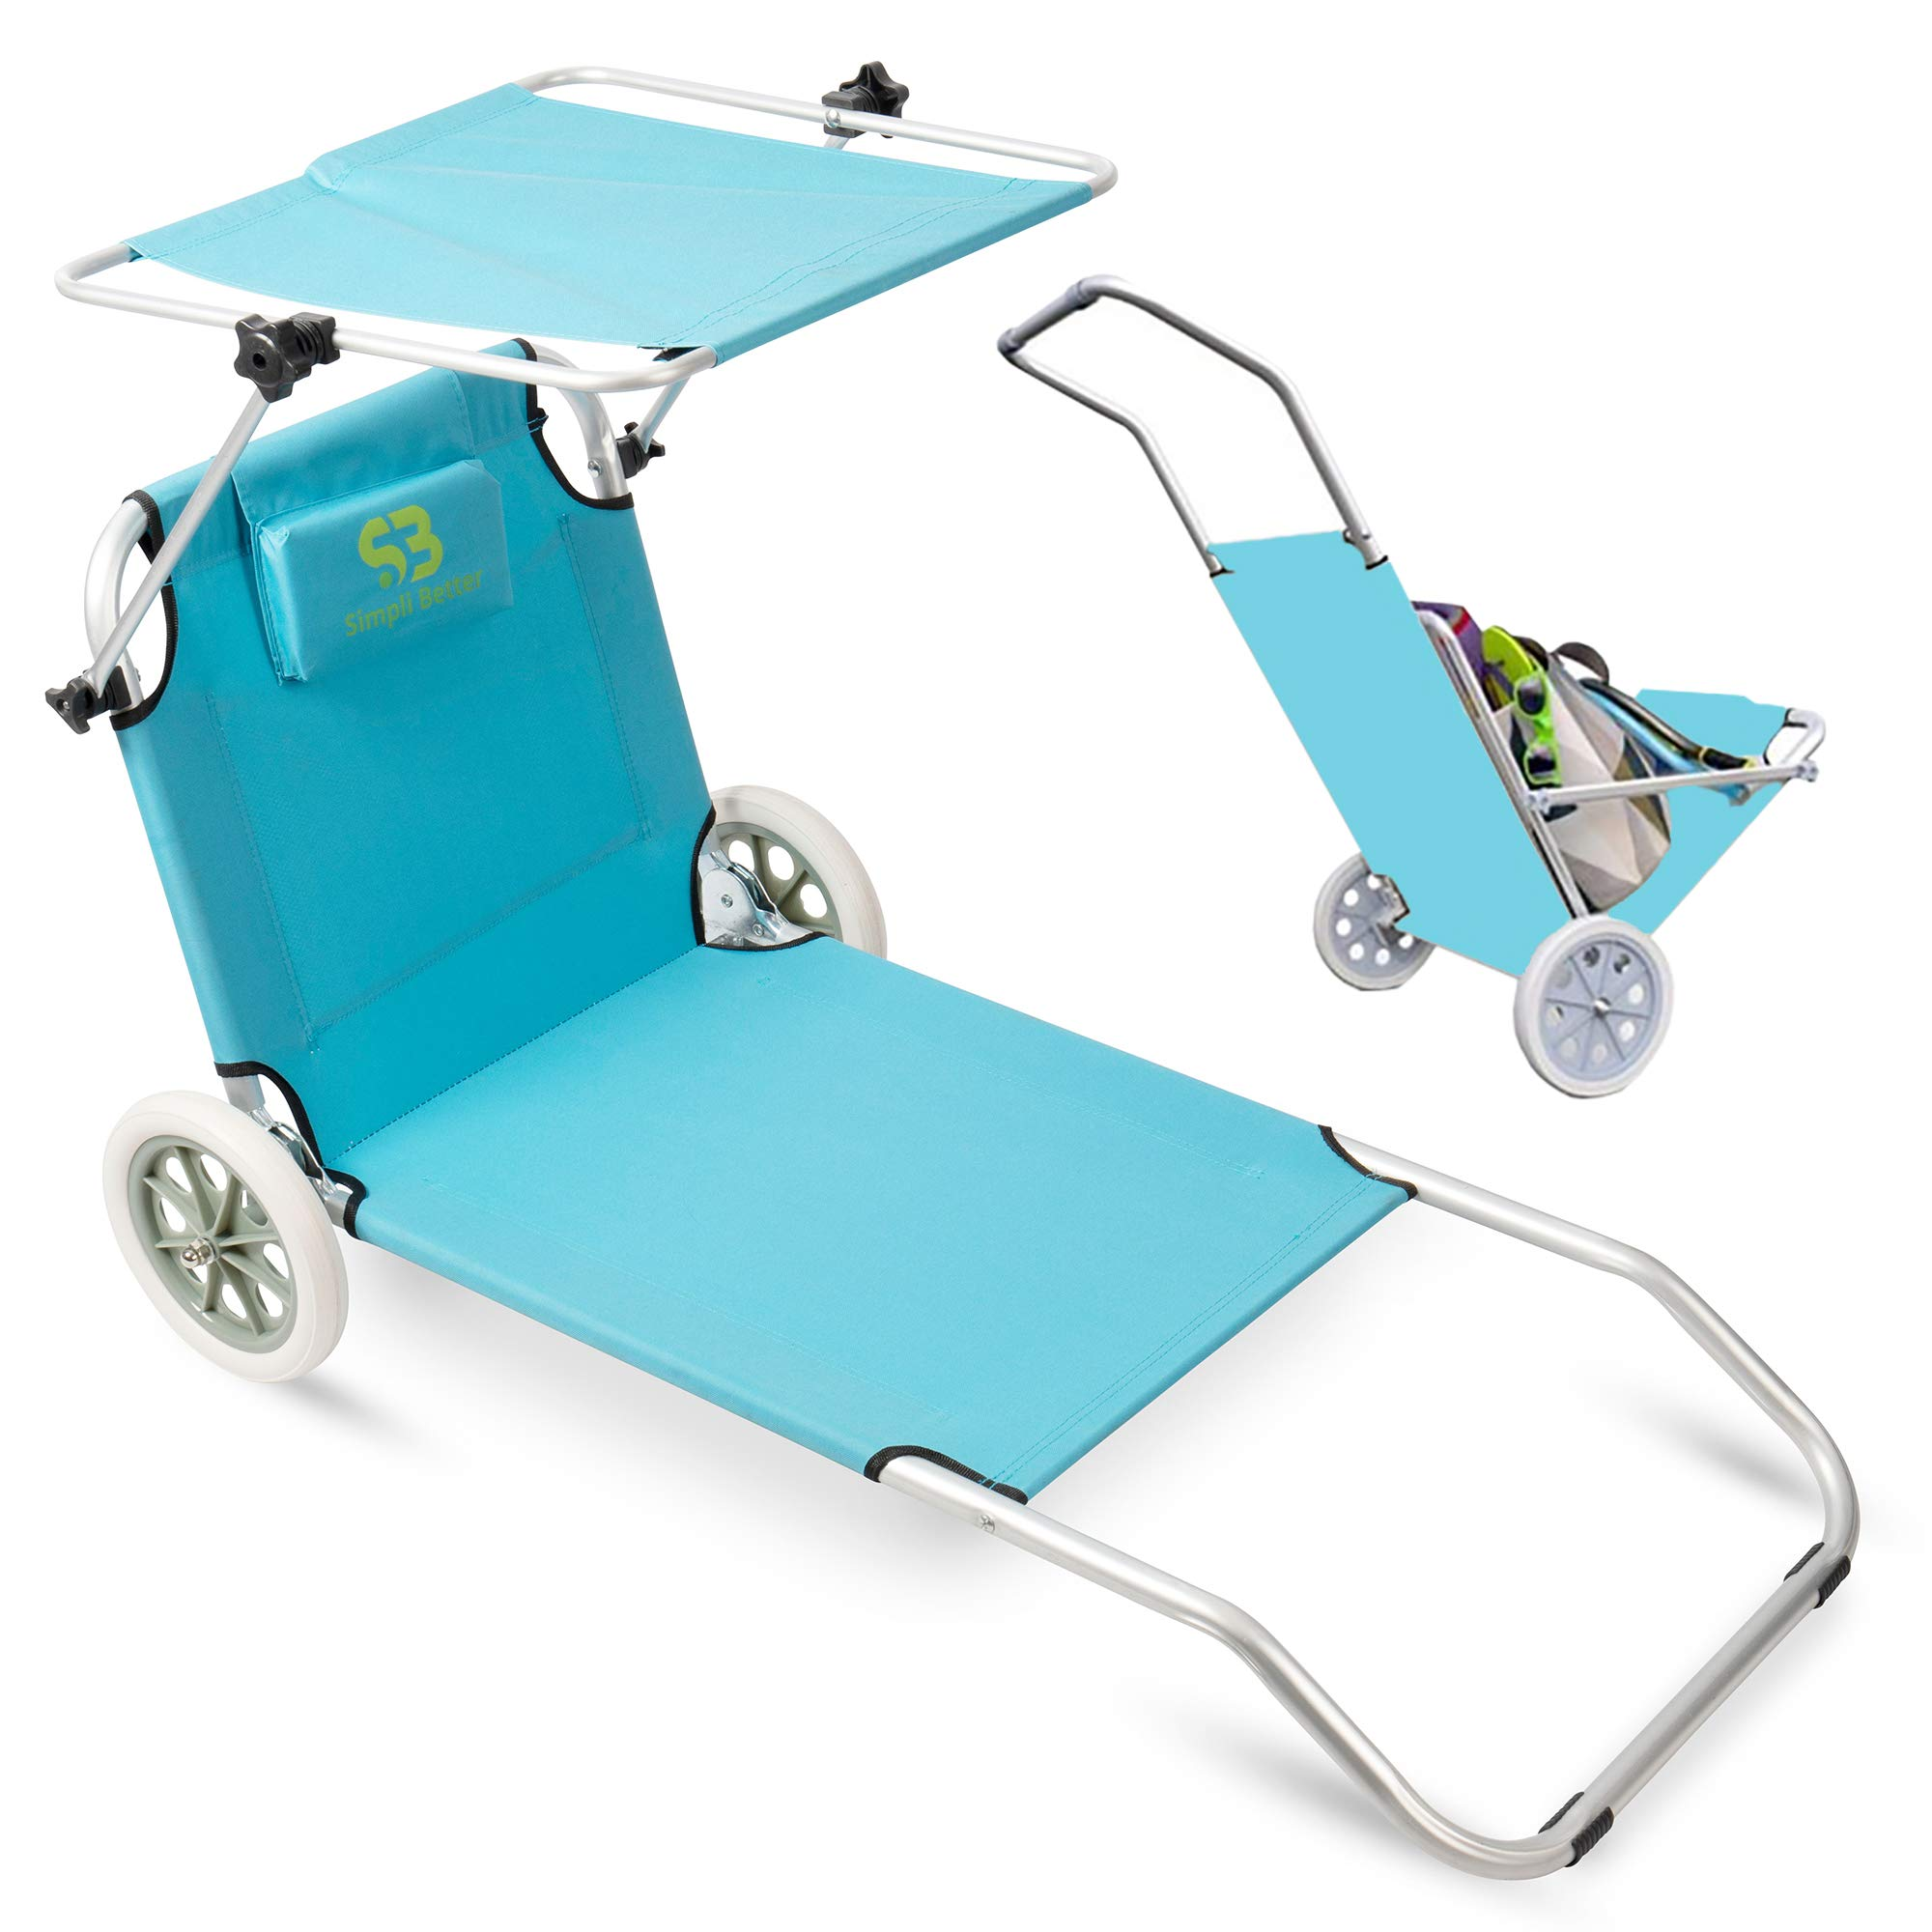 Simpli Better Premium Beach Chairs/Beach Cart with Wheels, Making it Extremely Portable. Able to Be Folded and Built-in Pillow and Sunshade, Perfect for Beaches, Picnics, and Camping.